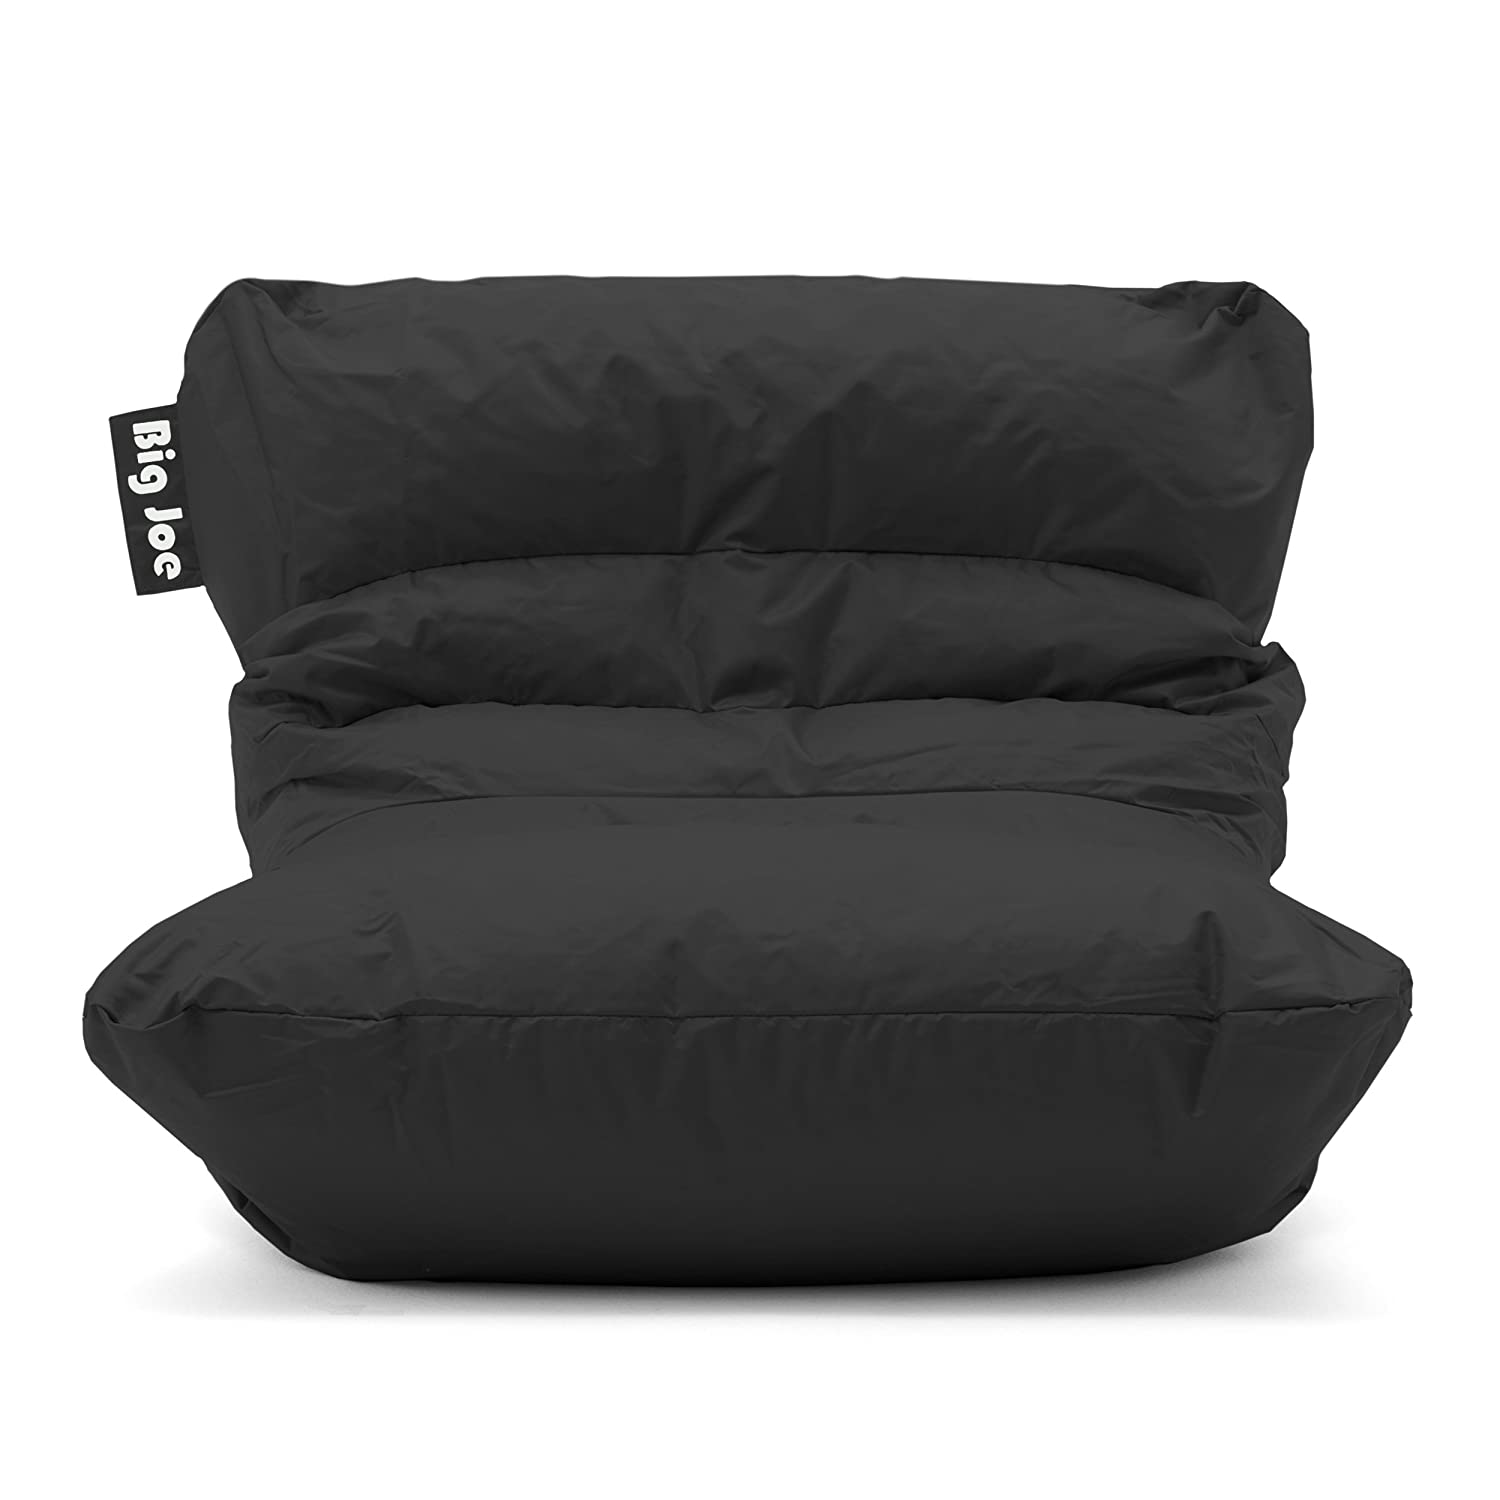 Big joe bean bag chair blue - Big Joe Bean Bag Chair Blue 32